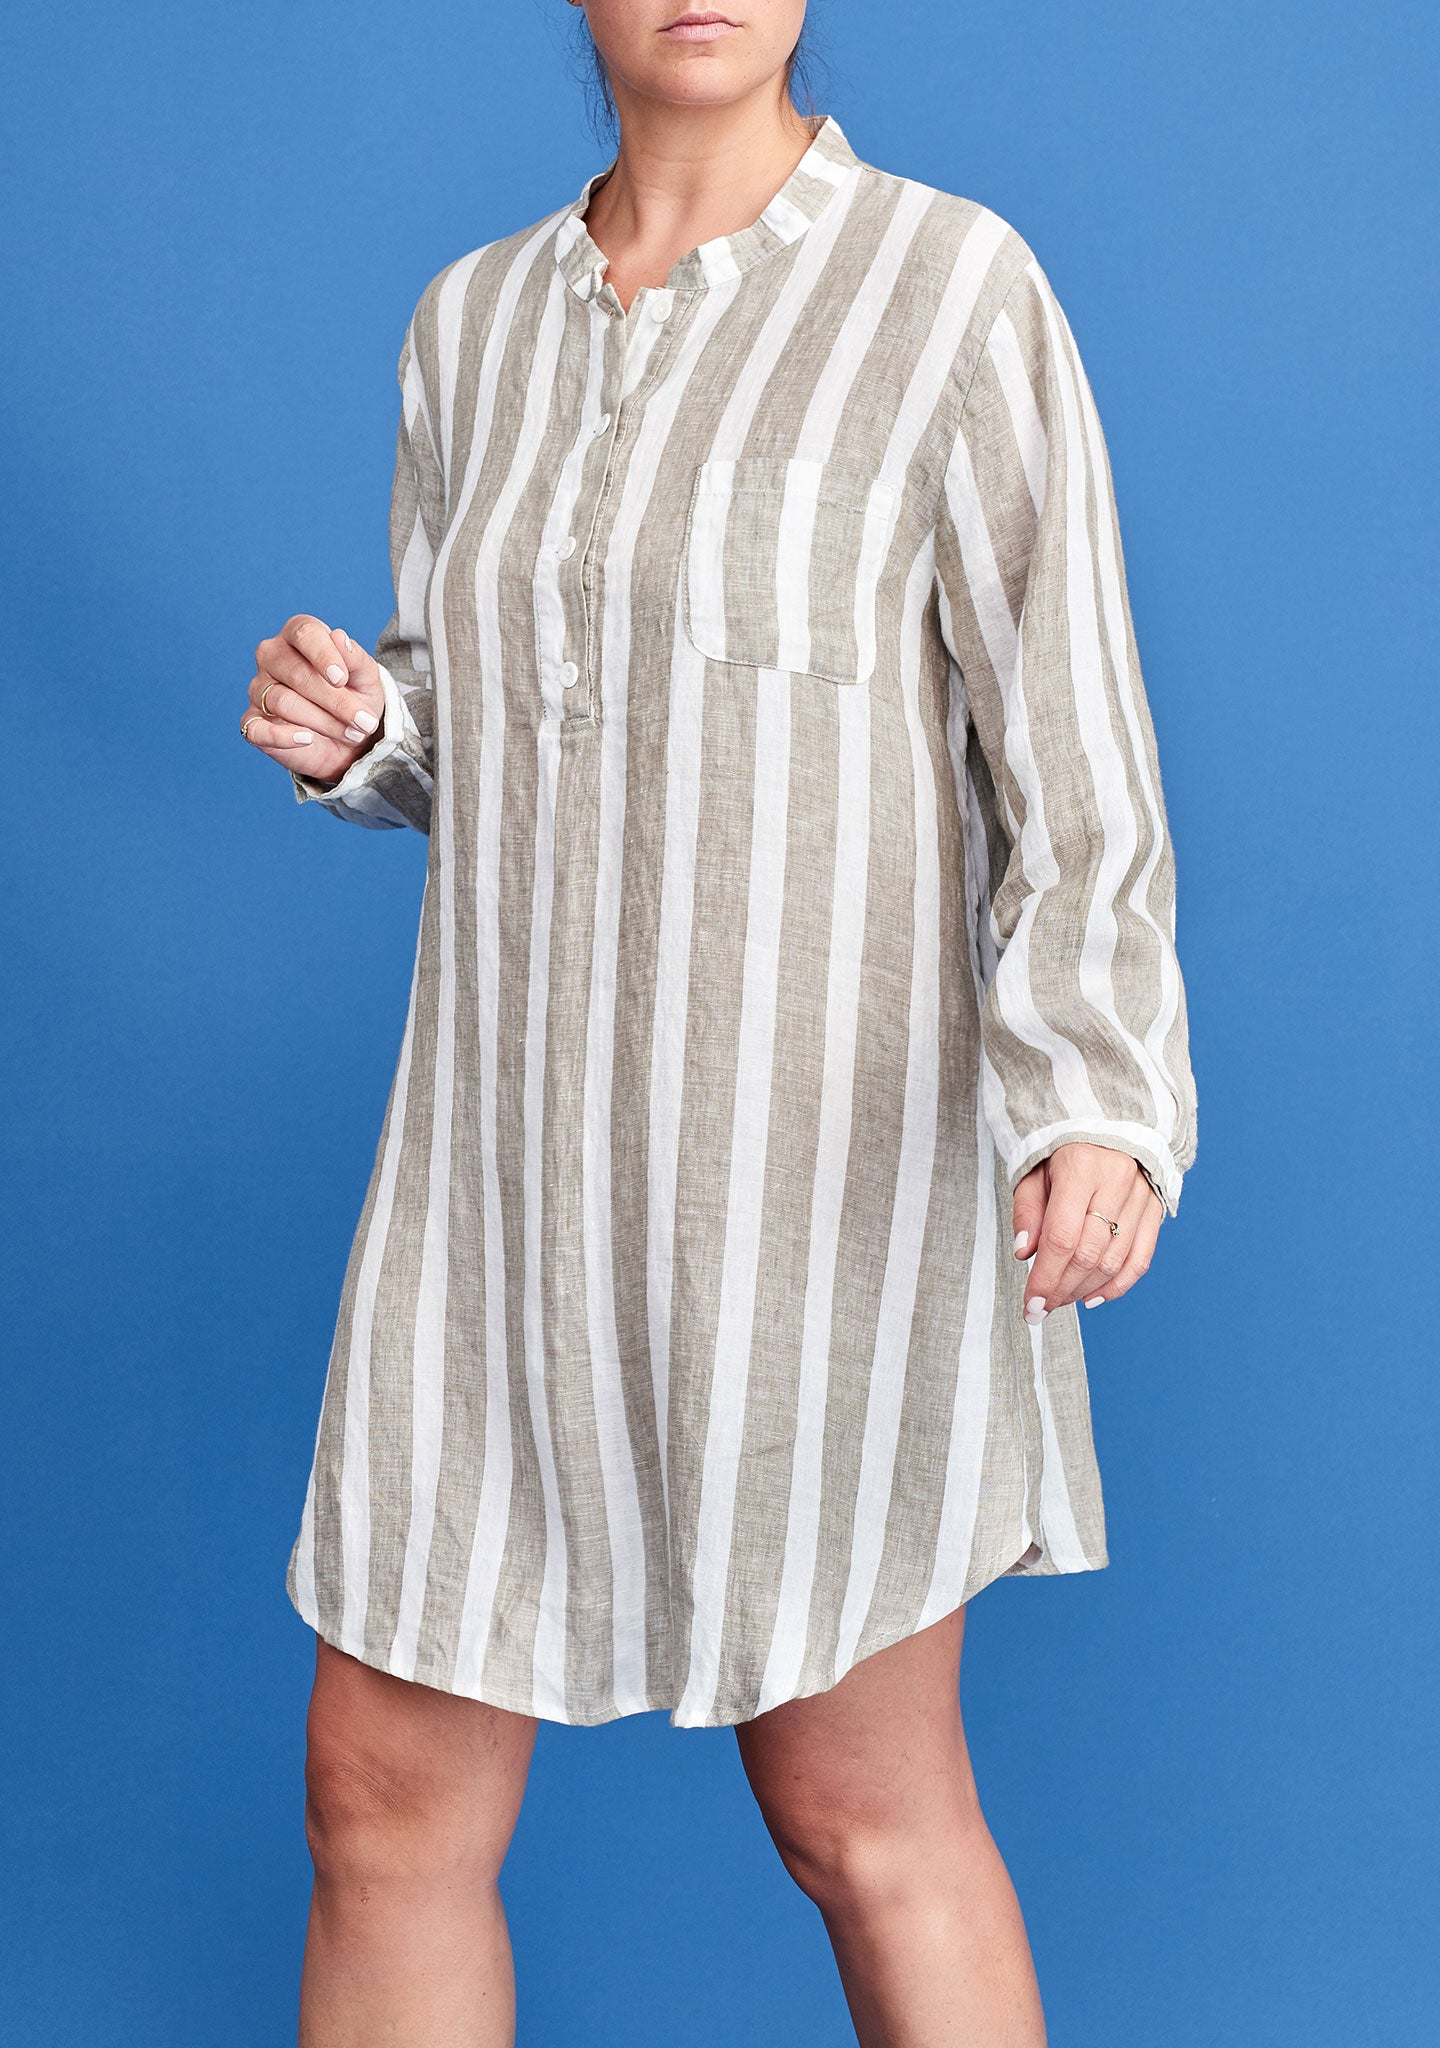 nightshirt natural